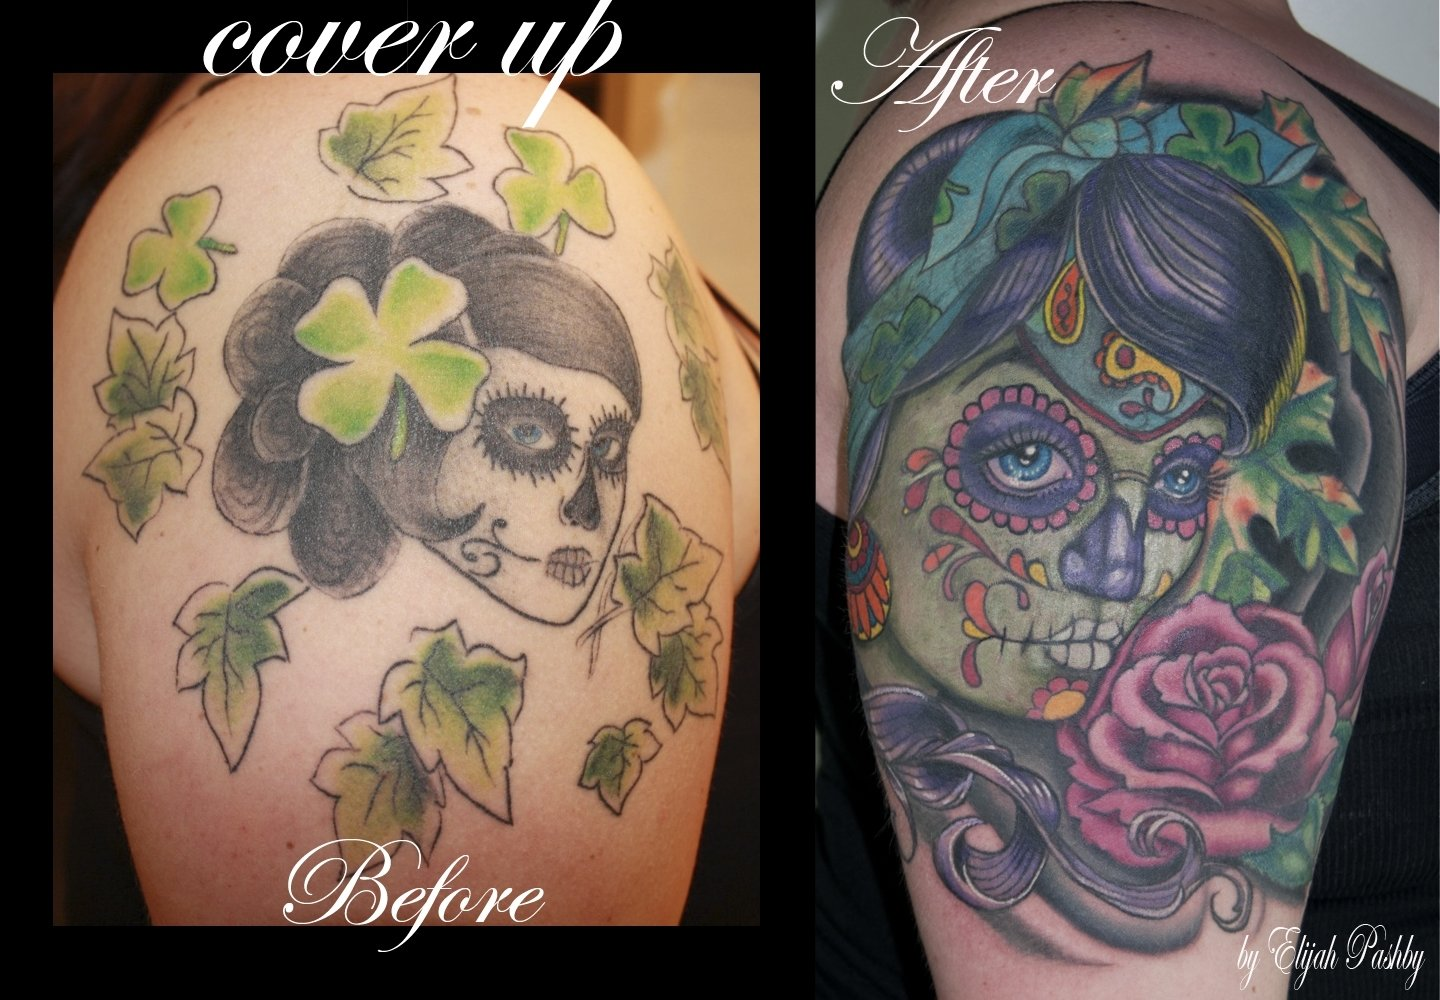 10 Attractive Big Tattoo Cover Up Ideas cover up tattoos amazing tattoo ideas 2020